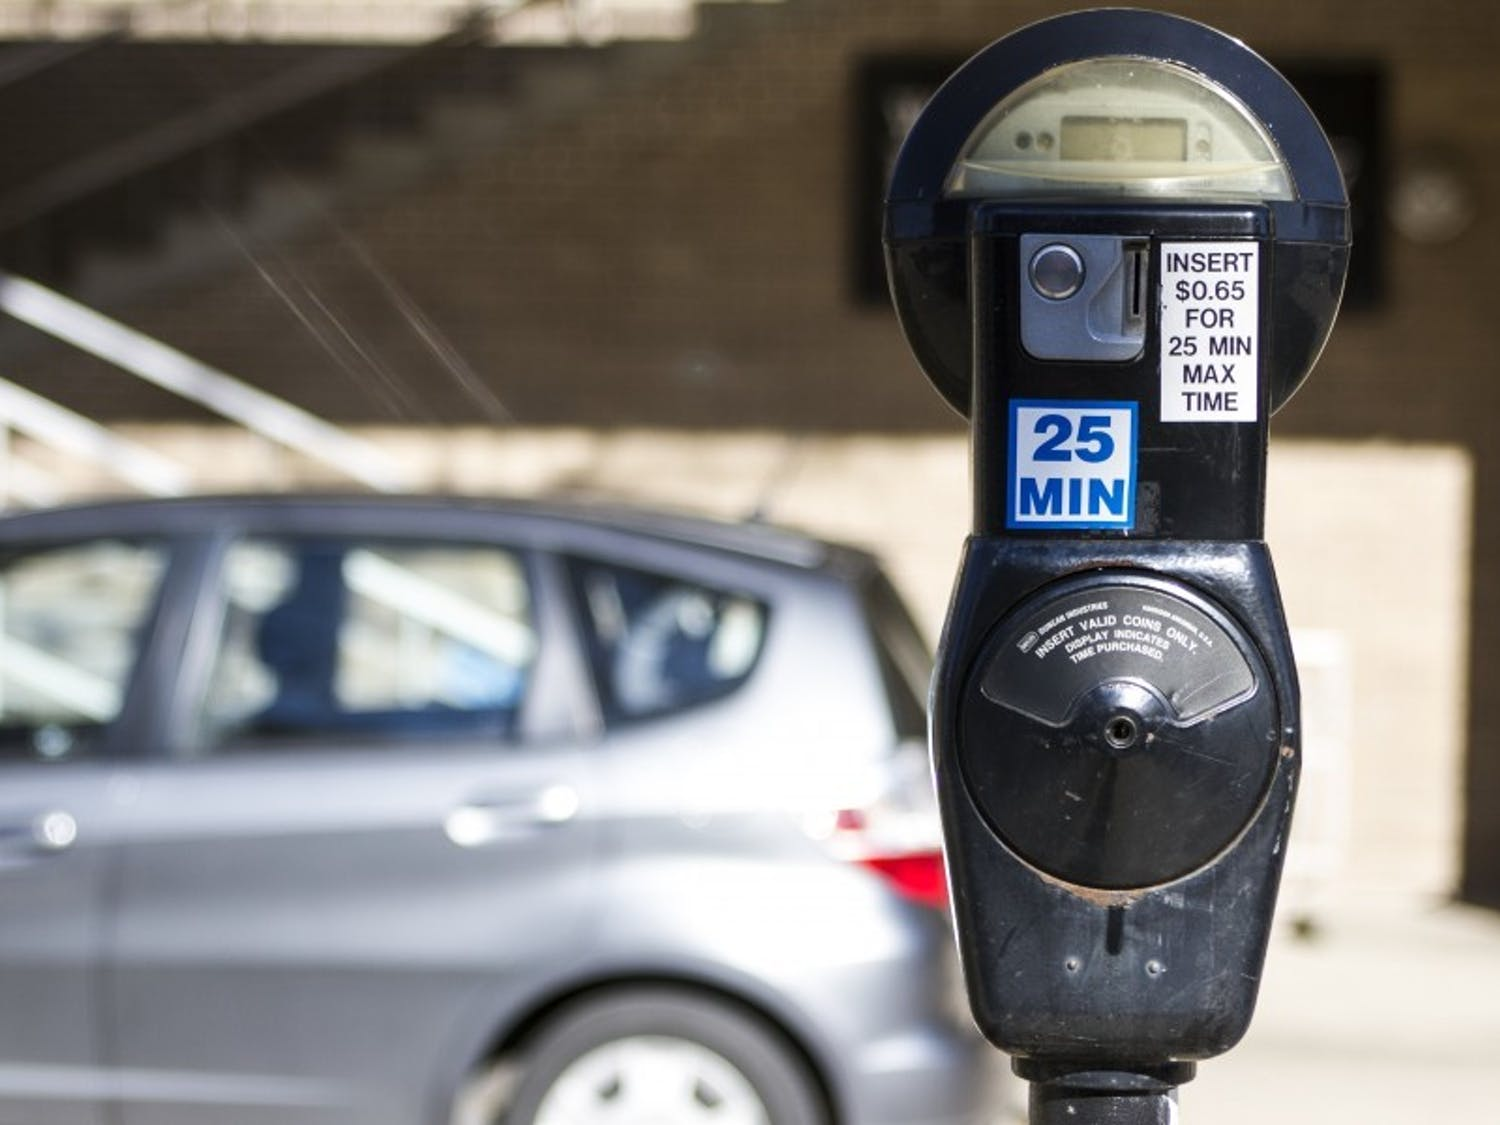 Photo of a parking pay meter.